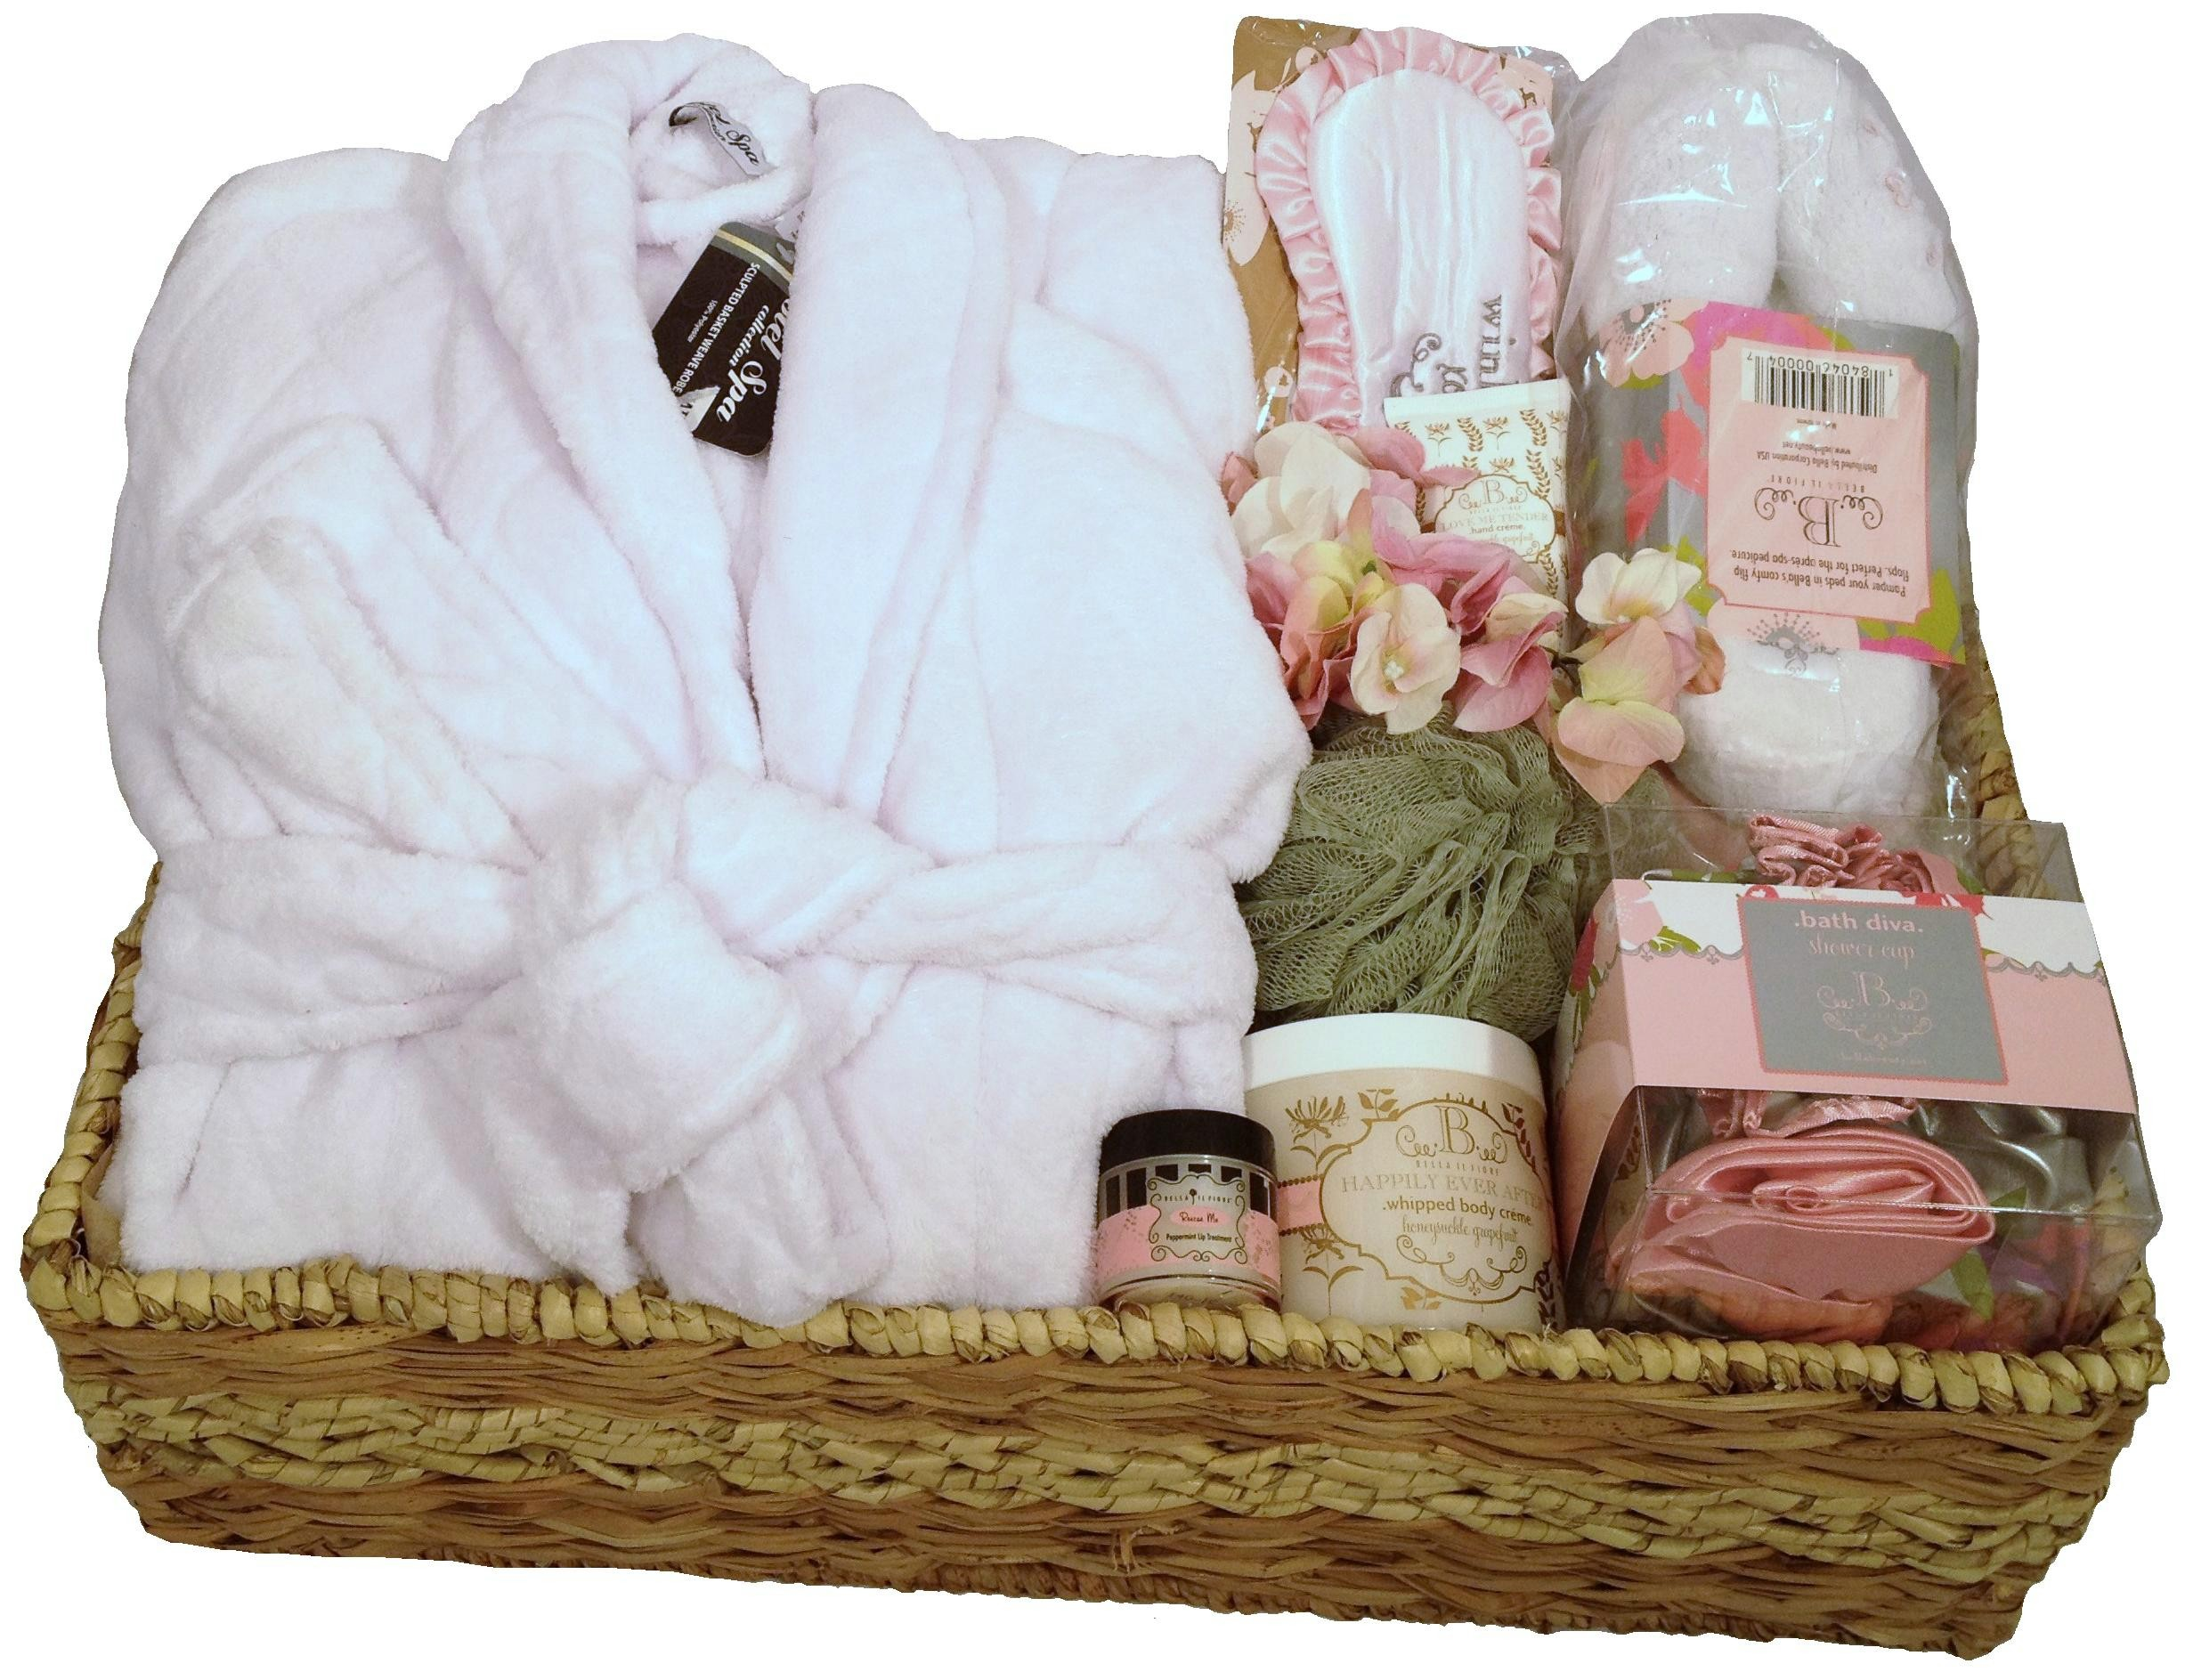 DELUXE HOTEL SPA GIFT BASKET